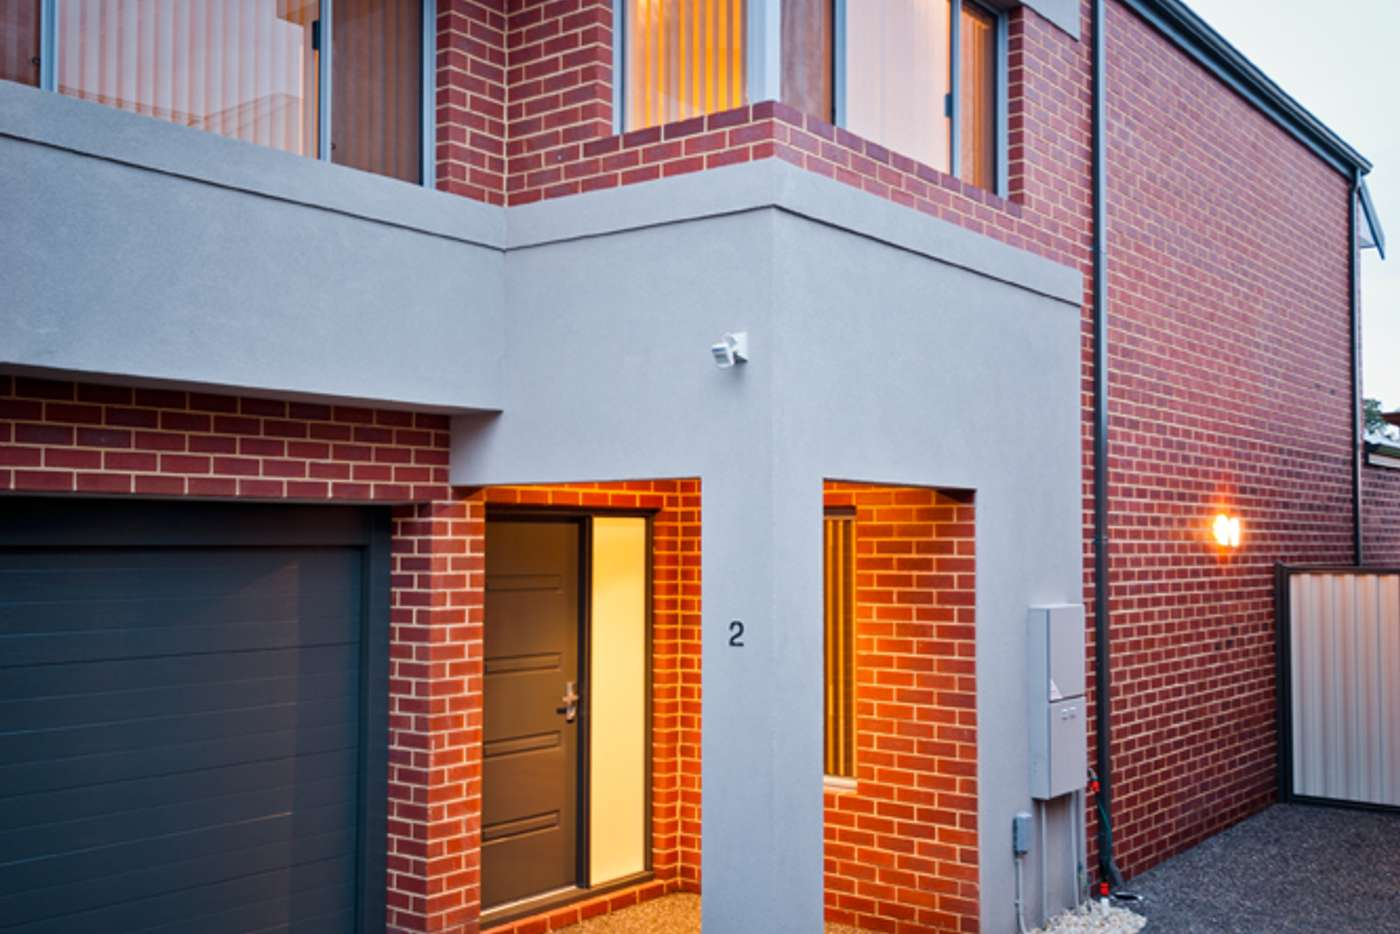 Main view of Homely townhouse listing, Address available on request